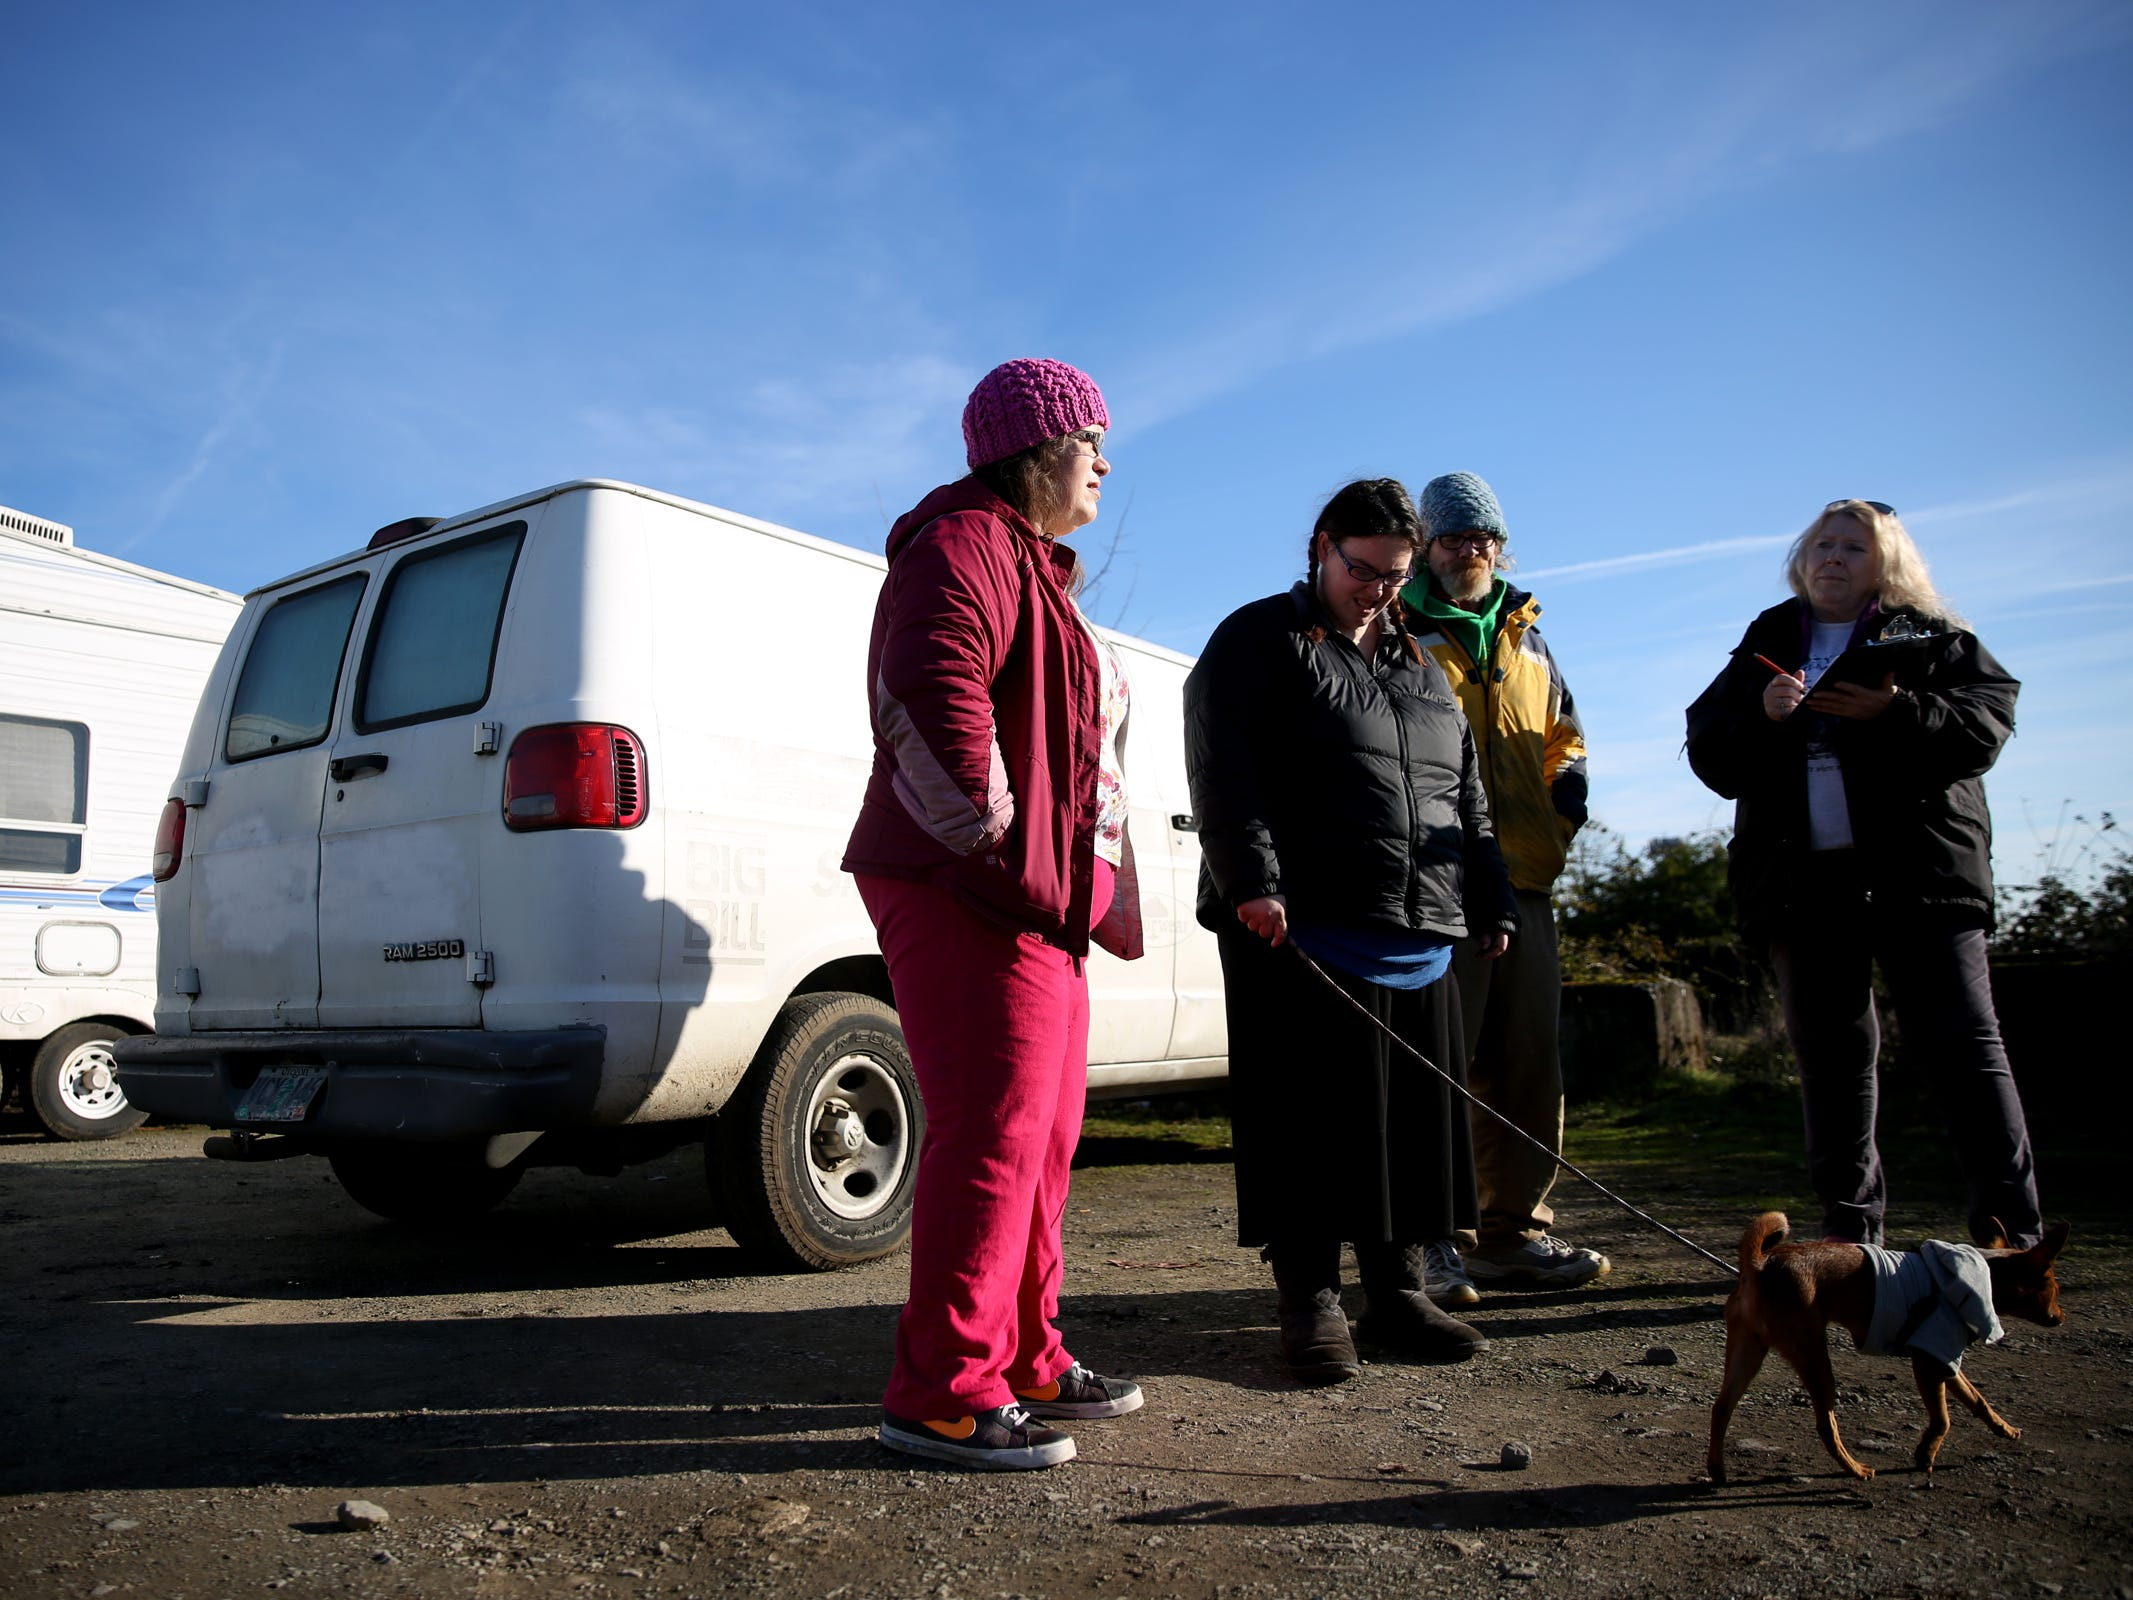 Maria Baker, 41, from left, Cheyanne West, 24, and Dave West, 52, give their information to volunteer Lorrie Walker during the annual Point-in-Time homeless count in Salem on Wednesday, Jan. 30, 2019. The number of people counted helps local programs qualify for federal funds to combat homelessness. They all live out of vehicles.